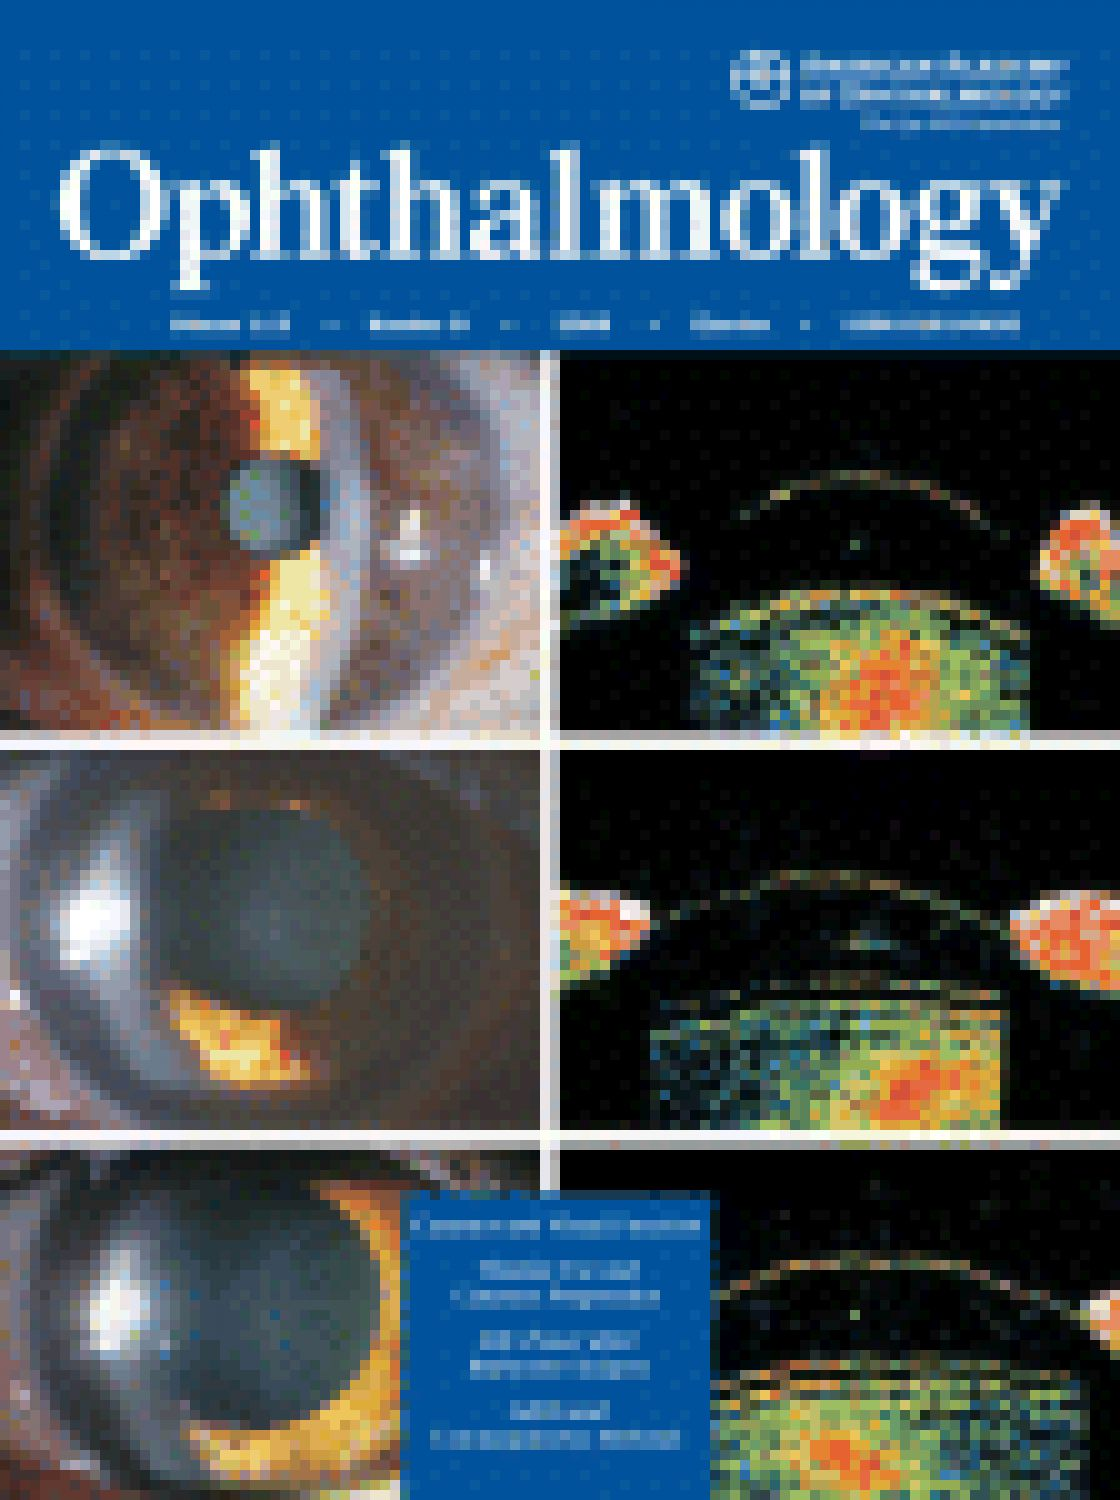 Intraocular lens power calculation after myopic refractive surgery: theoretical comparison of different methods